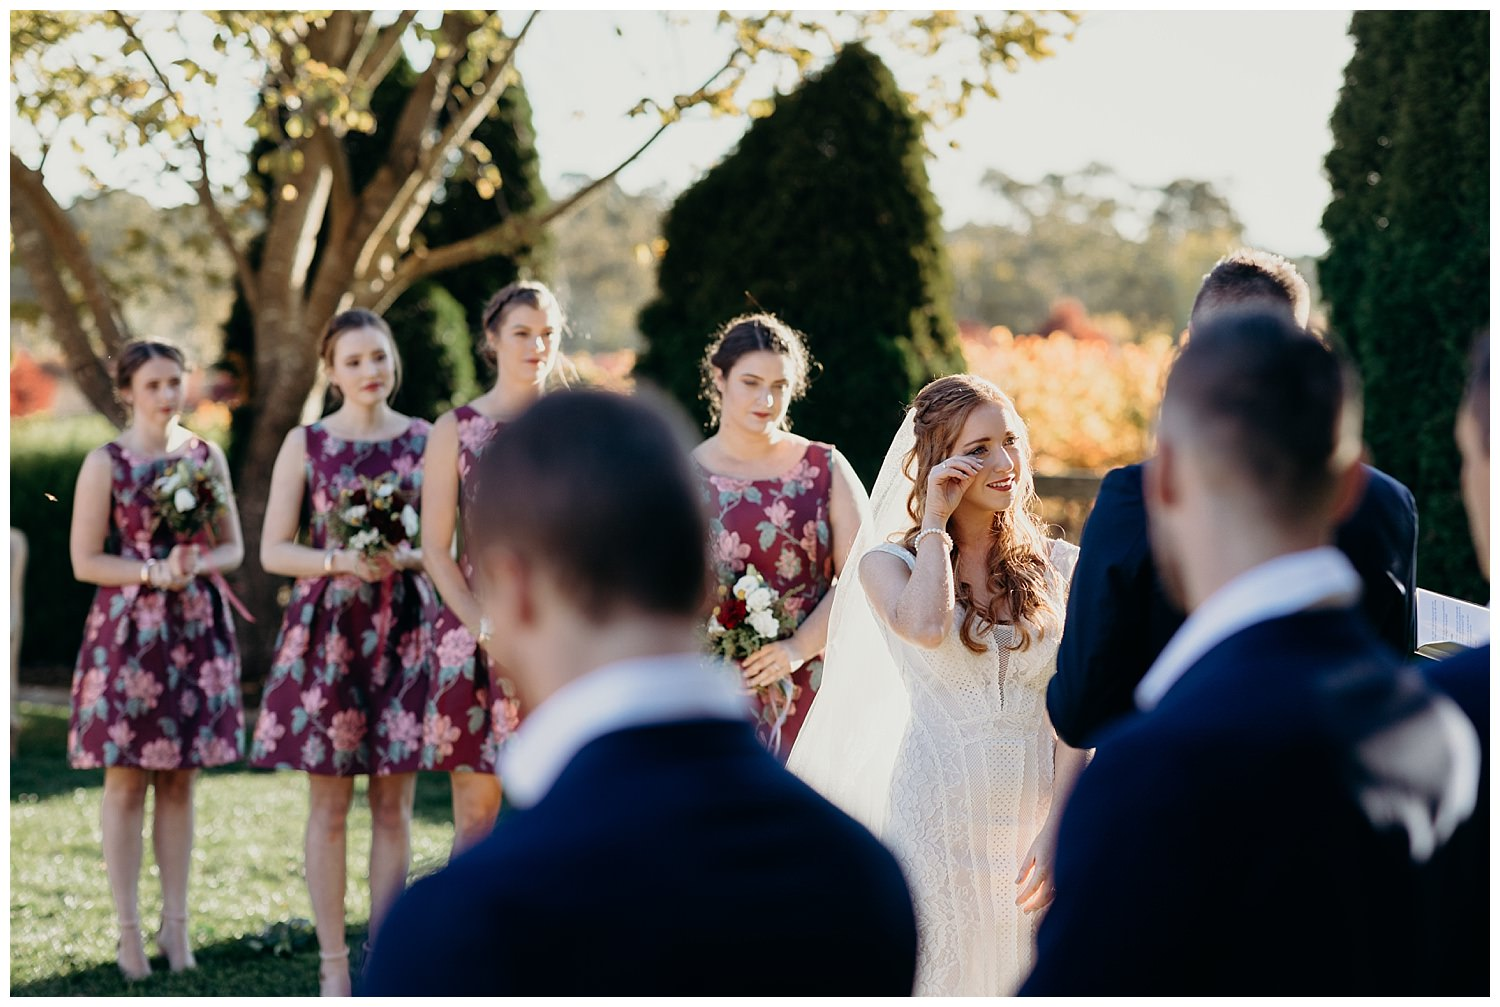 Bowral Southern Highlands Autumn Wedding - Bride wiping away tears